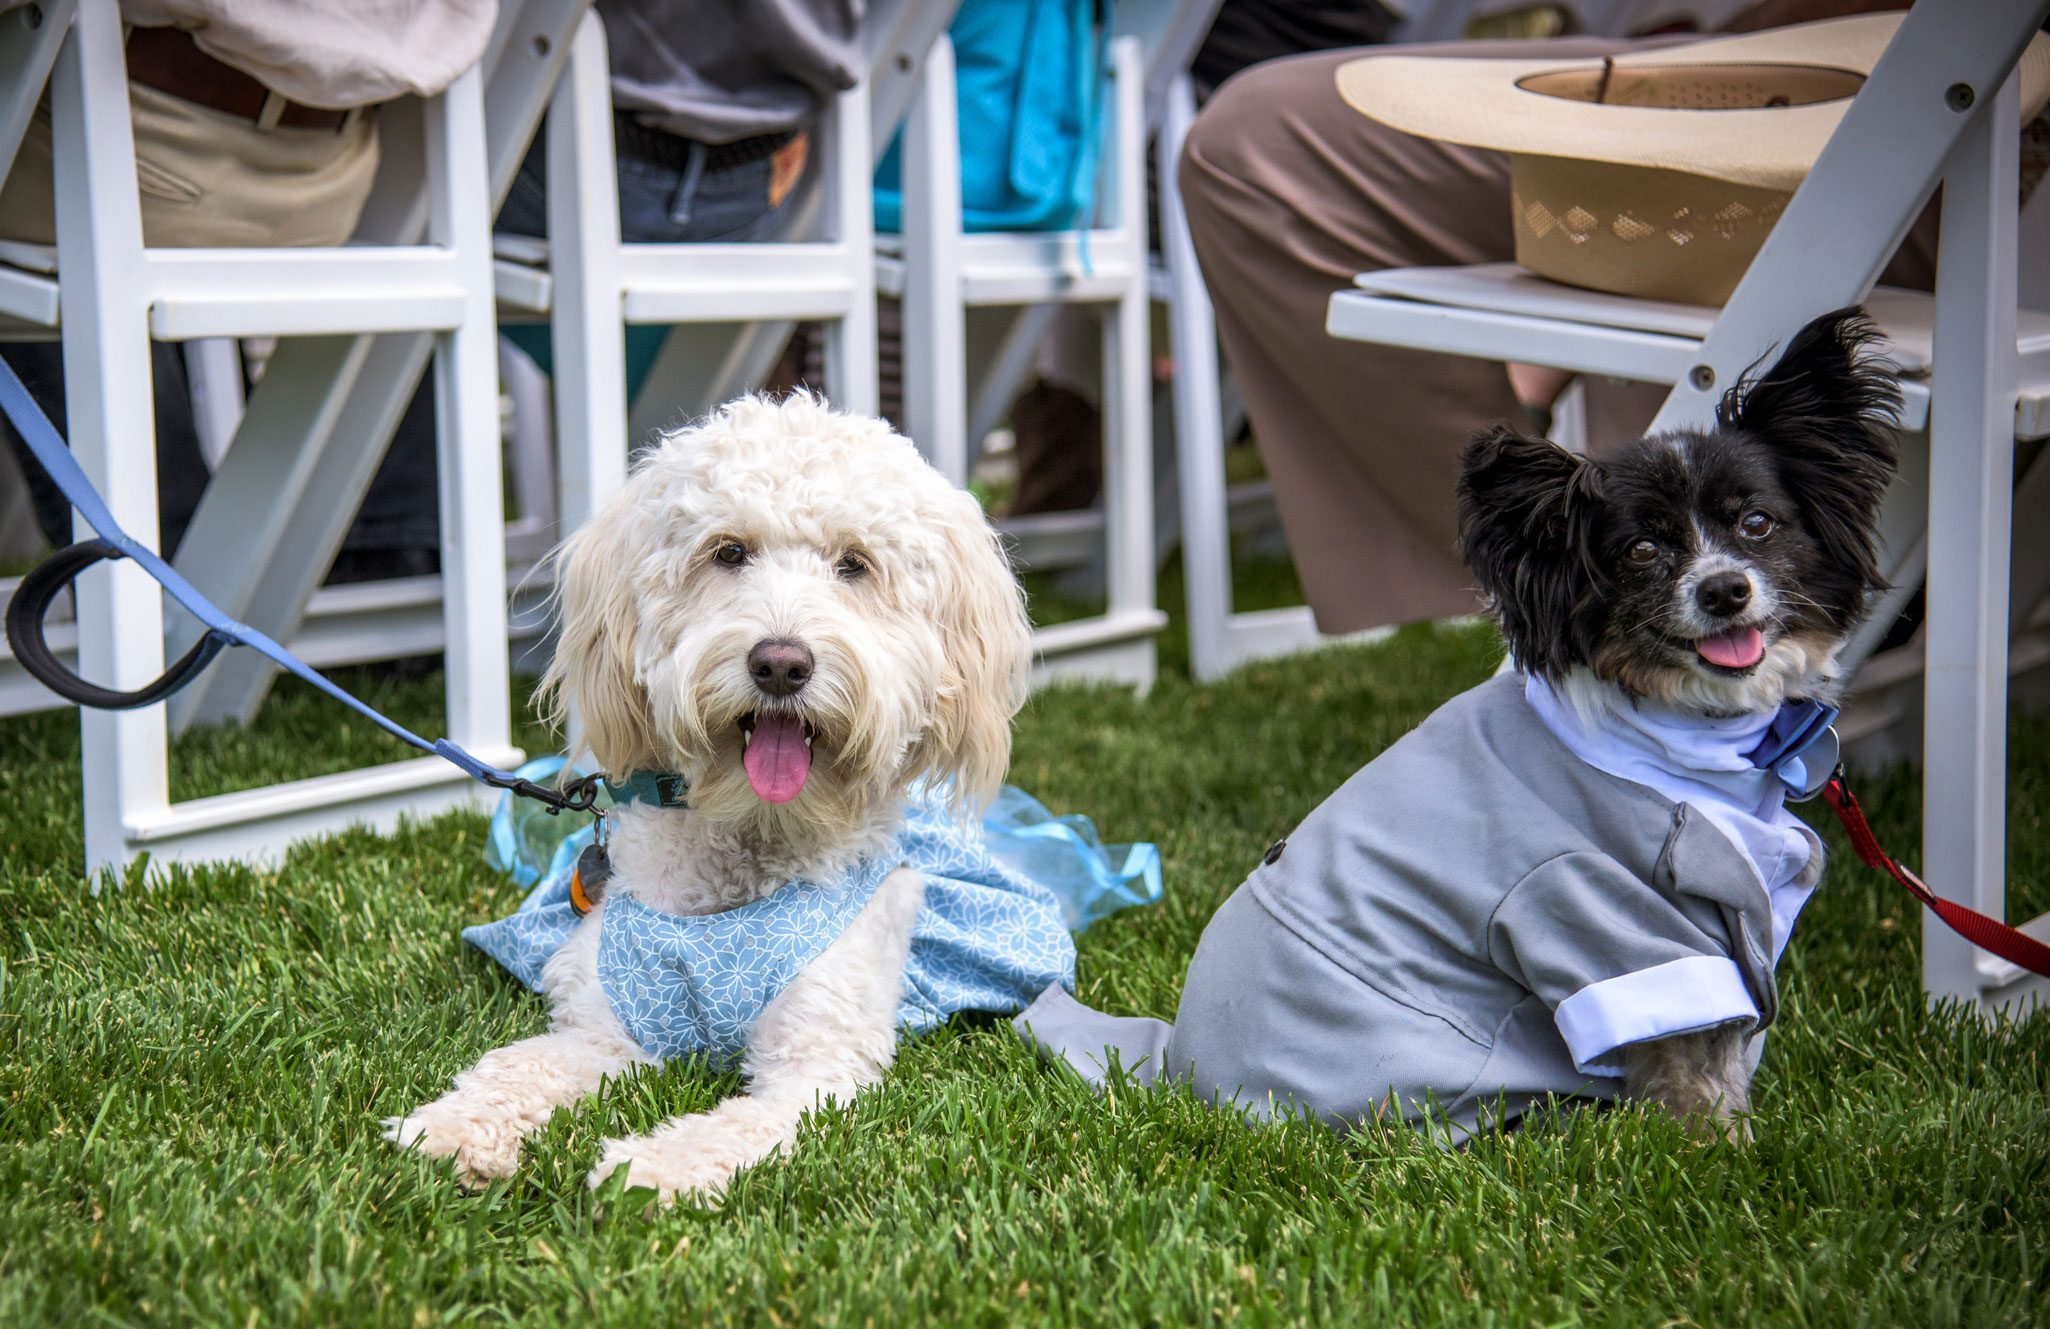 Puppies | Weddings at River Bend Ranch, Durango